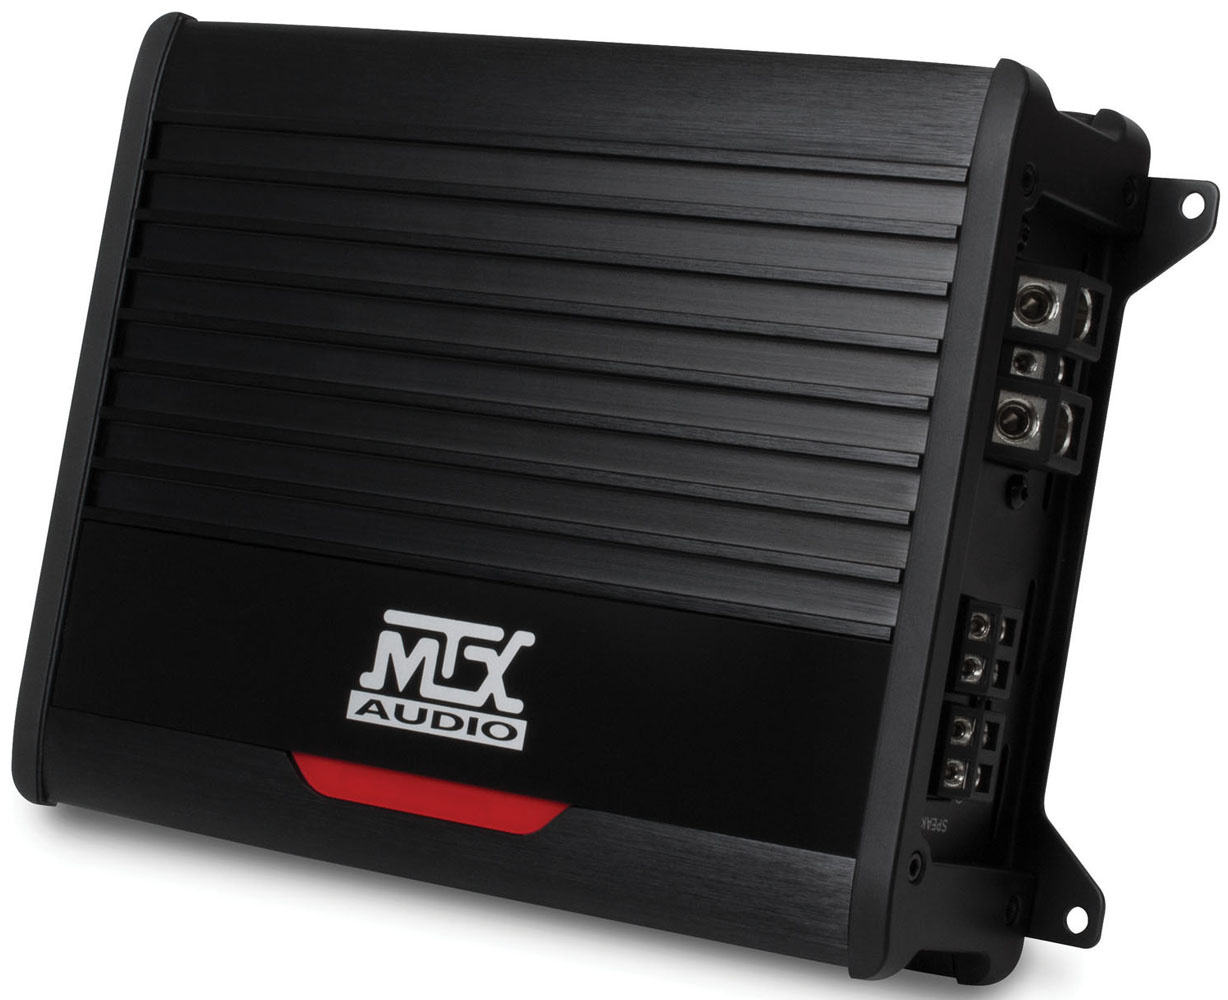 Thunder Series 500 Watt Rms Class D Mono Block Amplifier Mtx Audio 800w Circuit The Power Ideal For Home Serious About Sound